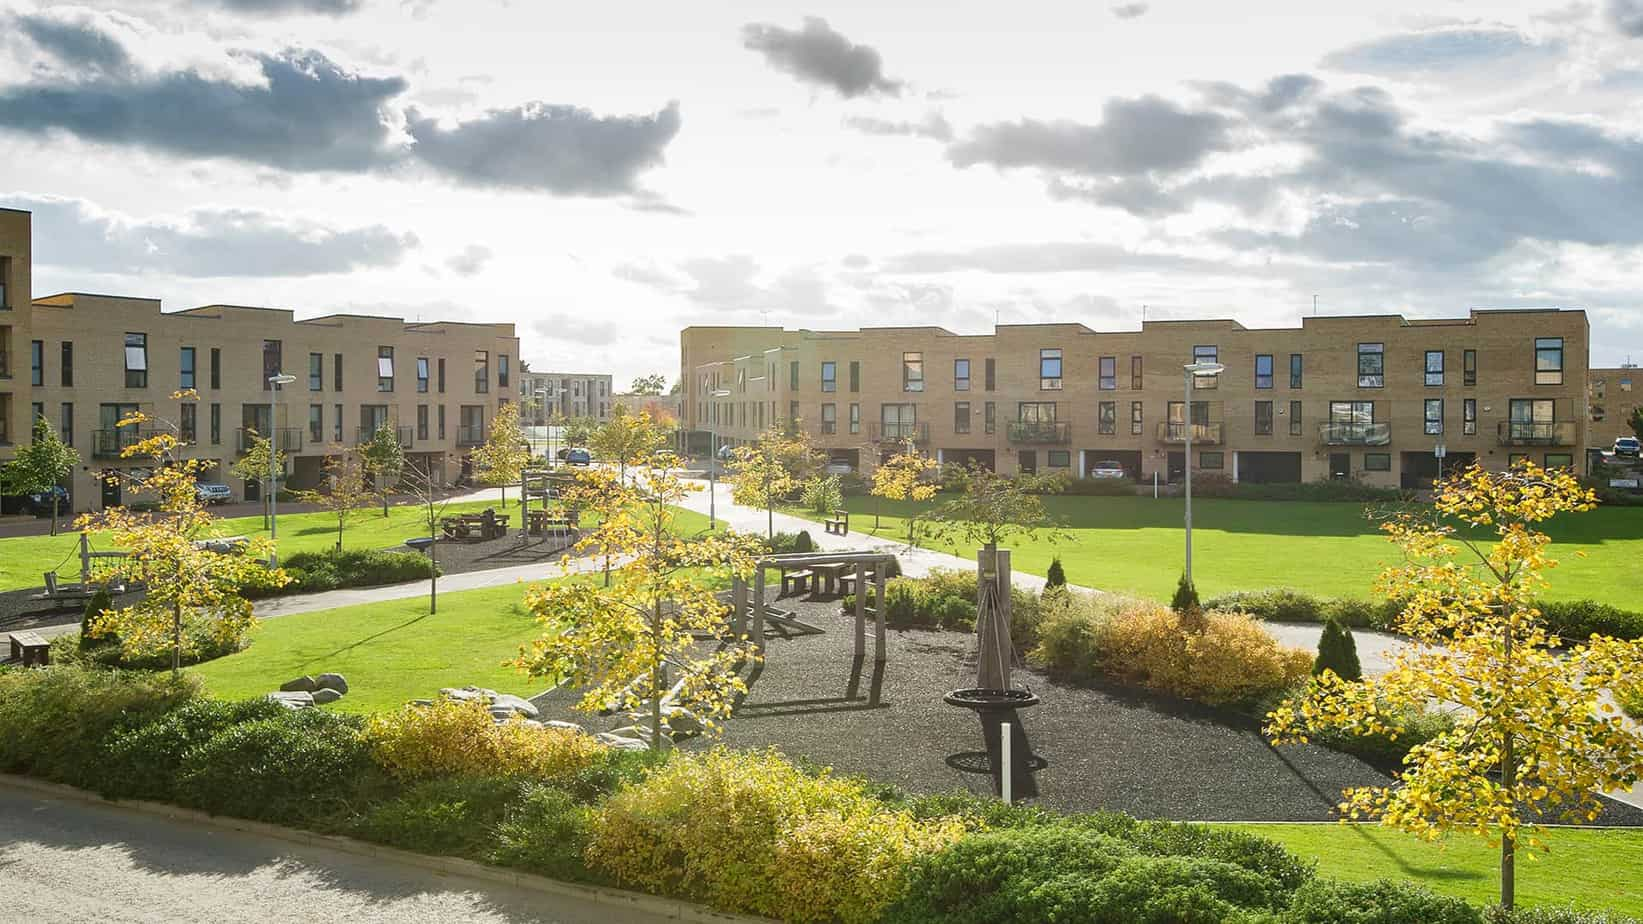 View of park near addenbrookes hospital from Tailored Stays Serviced Apartment balcony